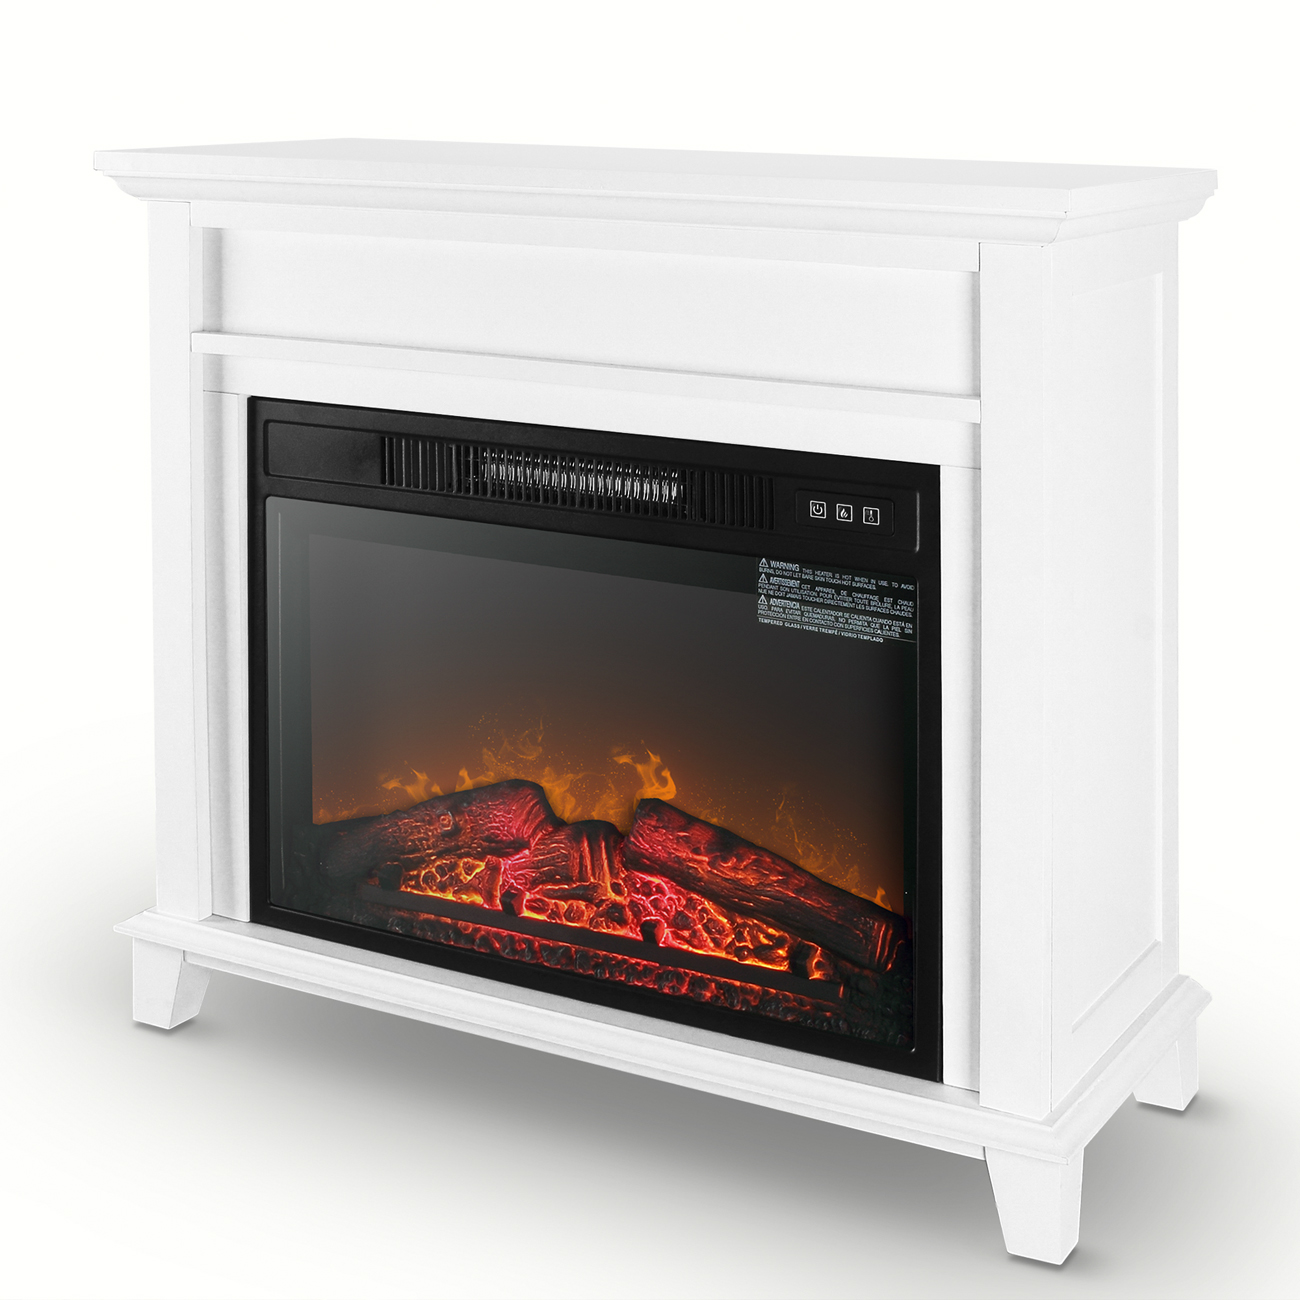 "Della Furniture 28"" Mantel Electric Fireplace Heater with 3 Heat /Flame Settings and Remote Control, White"